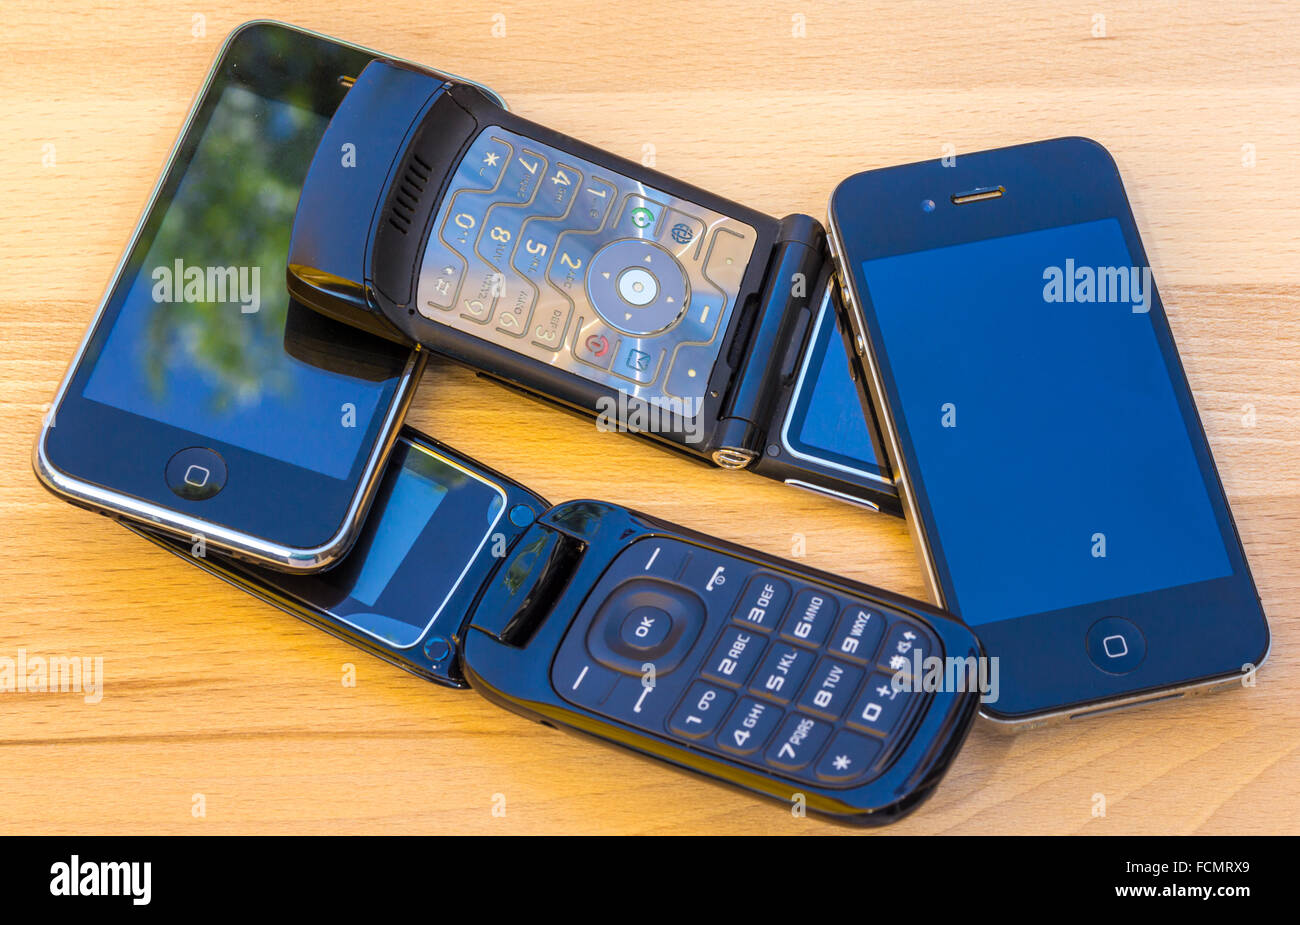 Cell phones - Stock Image